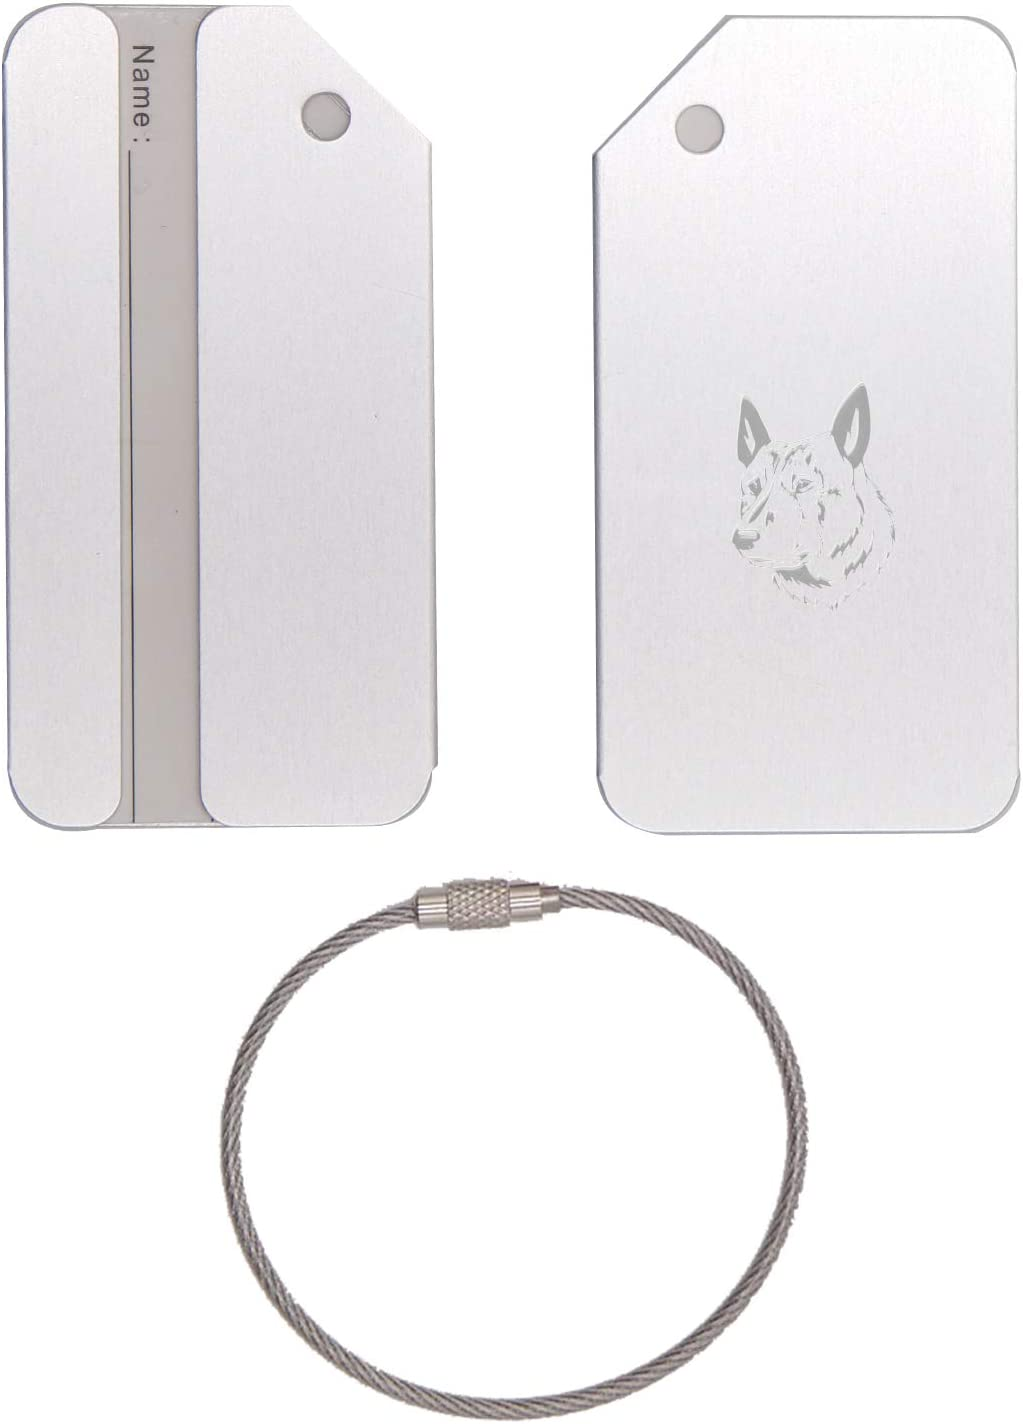 Dutch Shepherd Dog Stainless Steel - Engraved Luggage Tag (Metallic Silver) - United States Military Standard - For Any Type Of Luggage, Suitcases, Gym Bags, Briefcases, Golf Bags